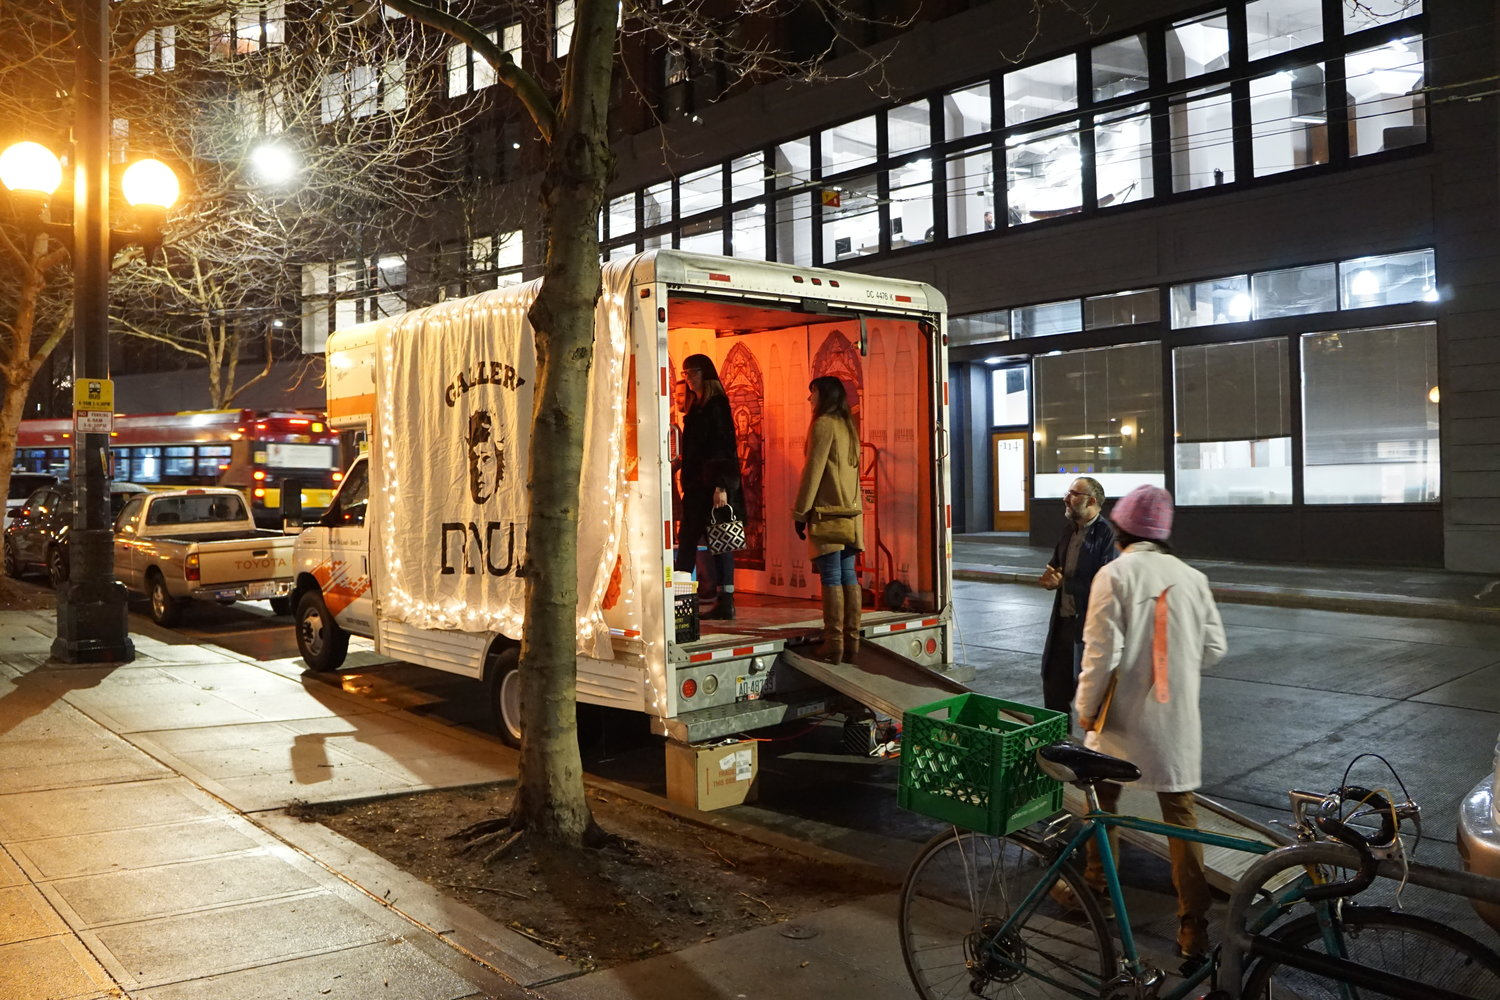 Gallery Raul : A Mobile Art Gallery Experiment - 16' U-Haul Box Truck Rental, Canvas, Lights, Furnishings15' x 10' x 20'$300.00 per show2016-2018Streetside Parking @ Georgetown Art Attack & Pioneer Square Art Walk (Seattle)Gallery Raul is an experiment in affordable easy access to space for artists to share their work. Gallery Raul can also be used for mobile, moving performance art, site-specific exhibitions, and reaching underserved neighborhoods with cultural services. City of Faces is exhibition shown in photo.